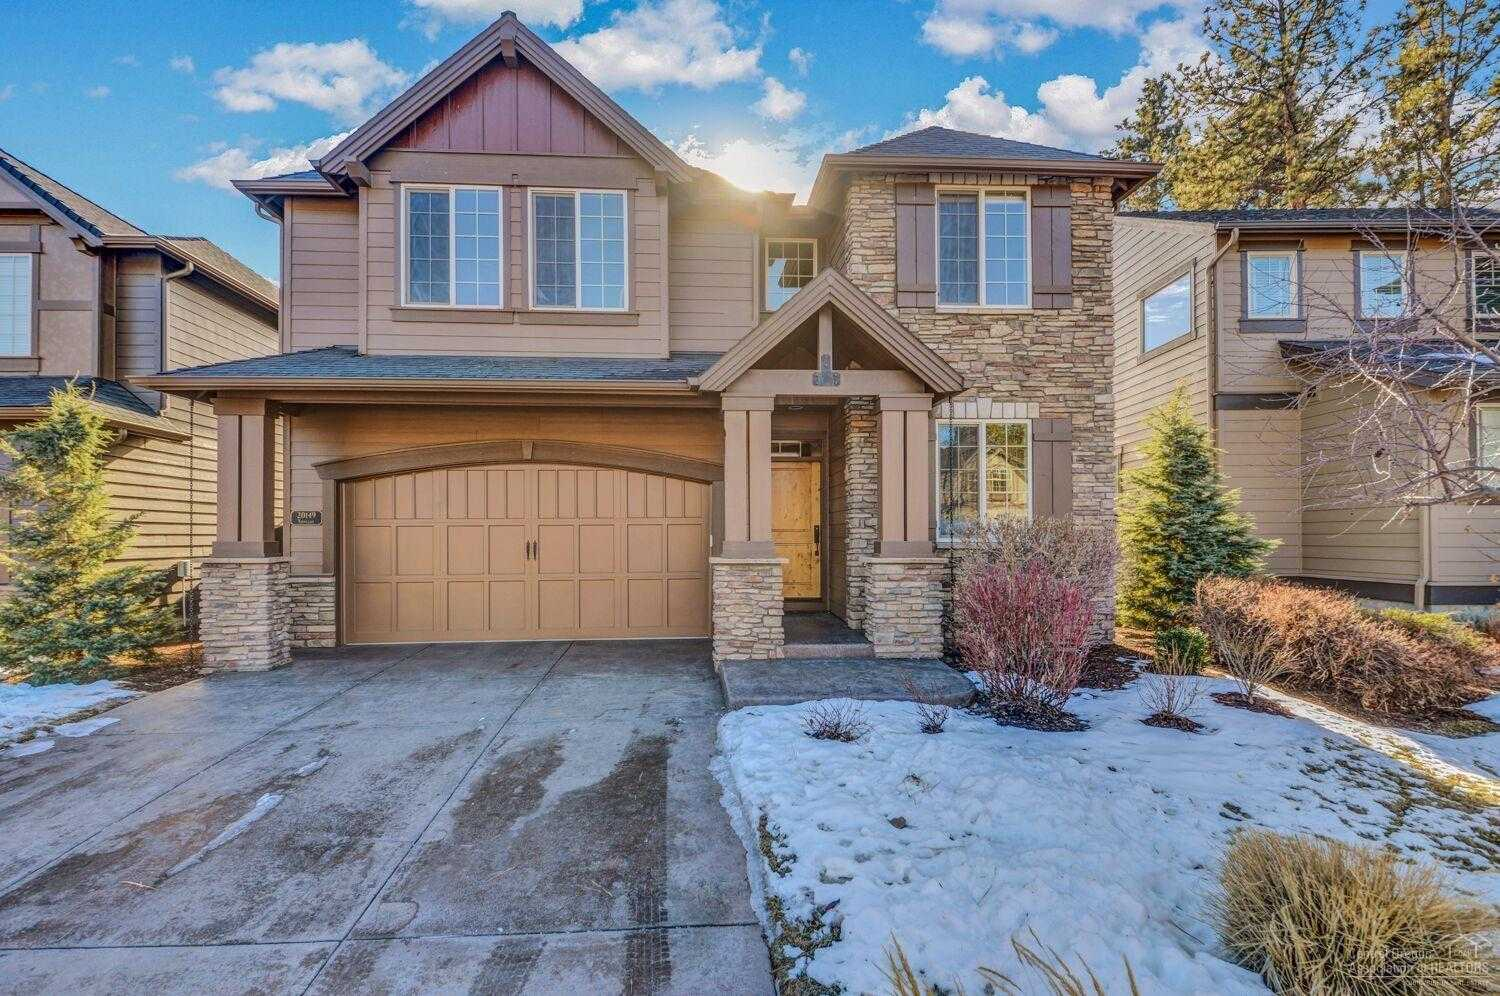 $499,900 - 4Br/3Ba -  for Sale in Bend